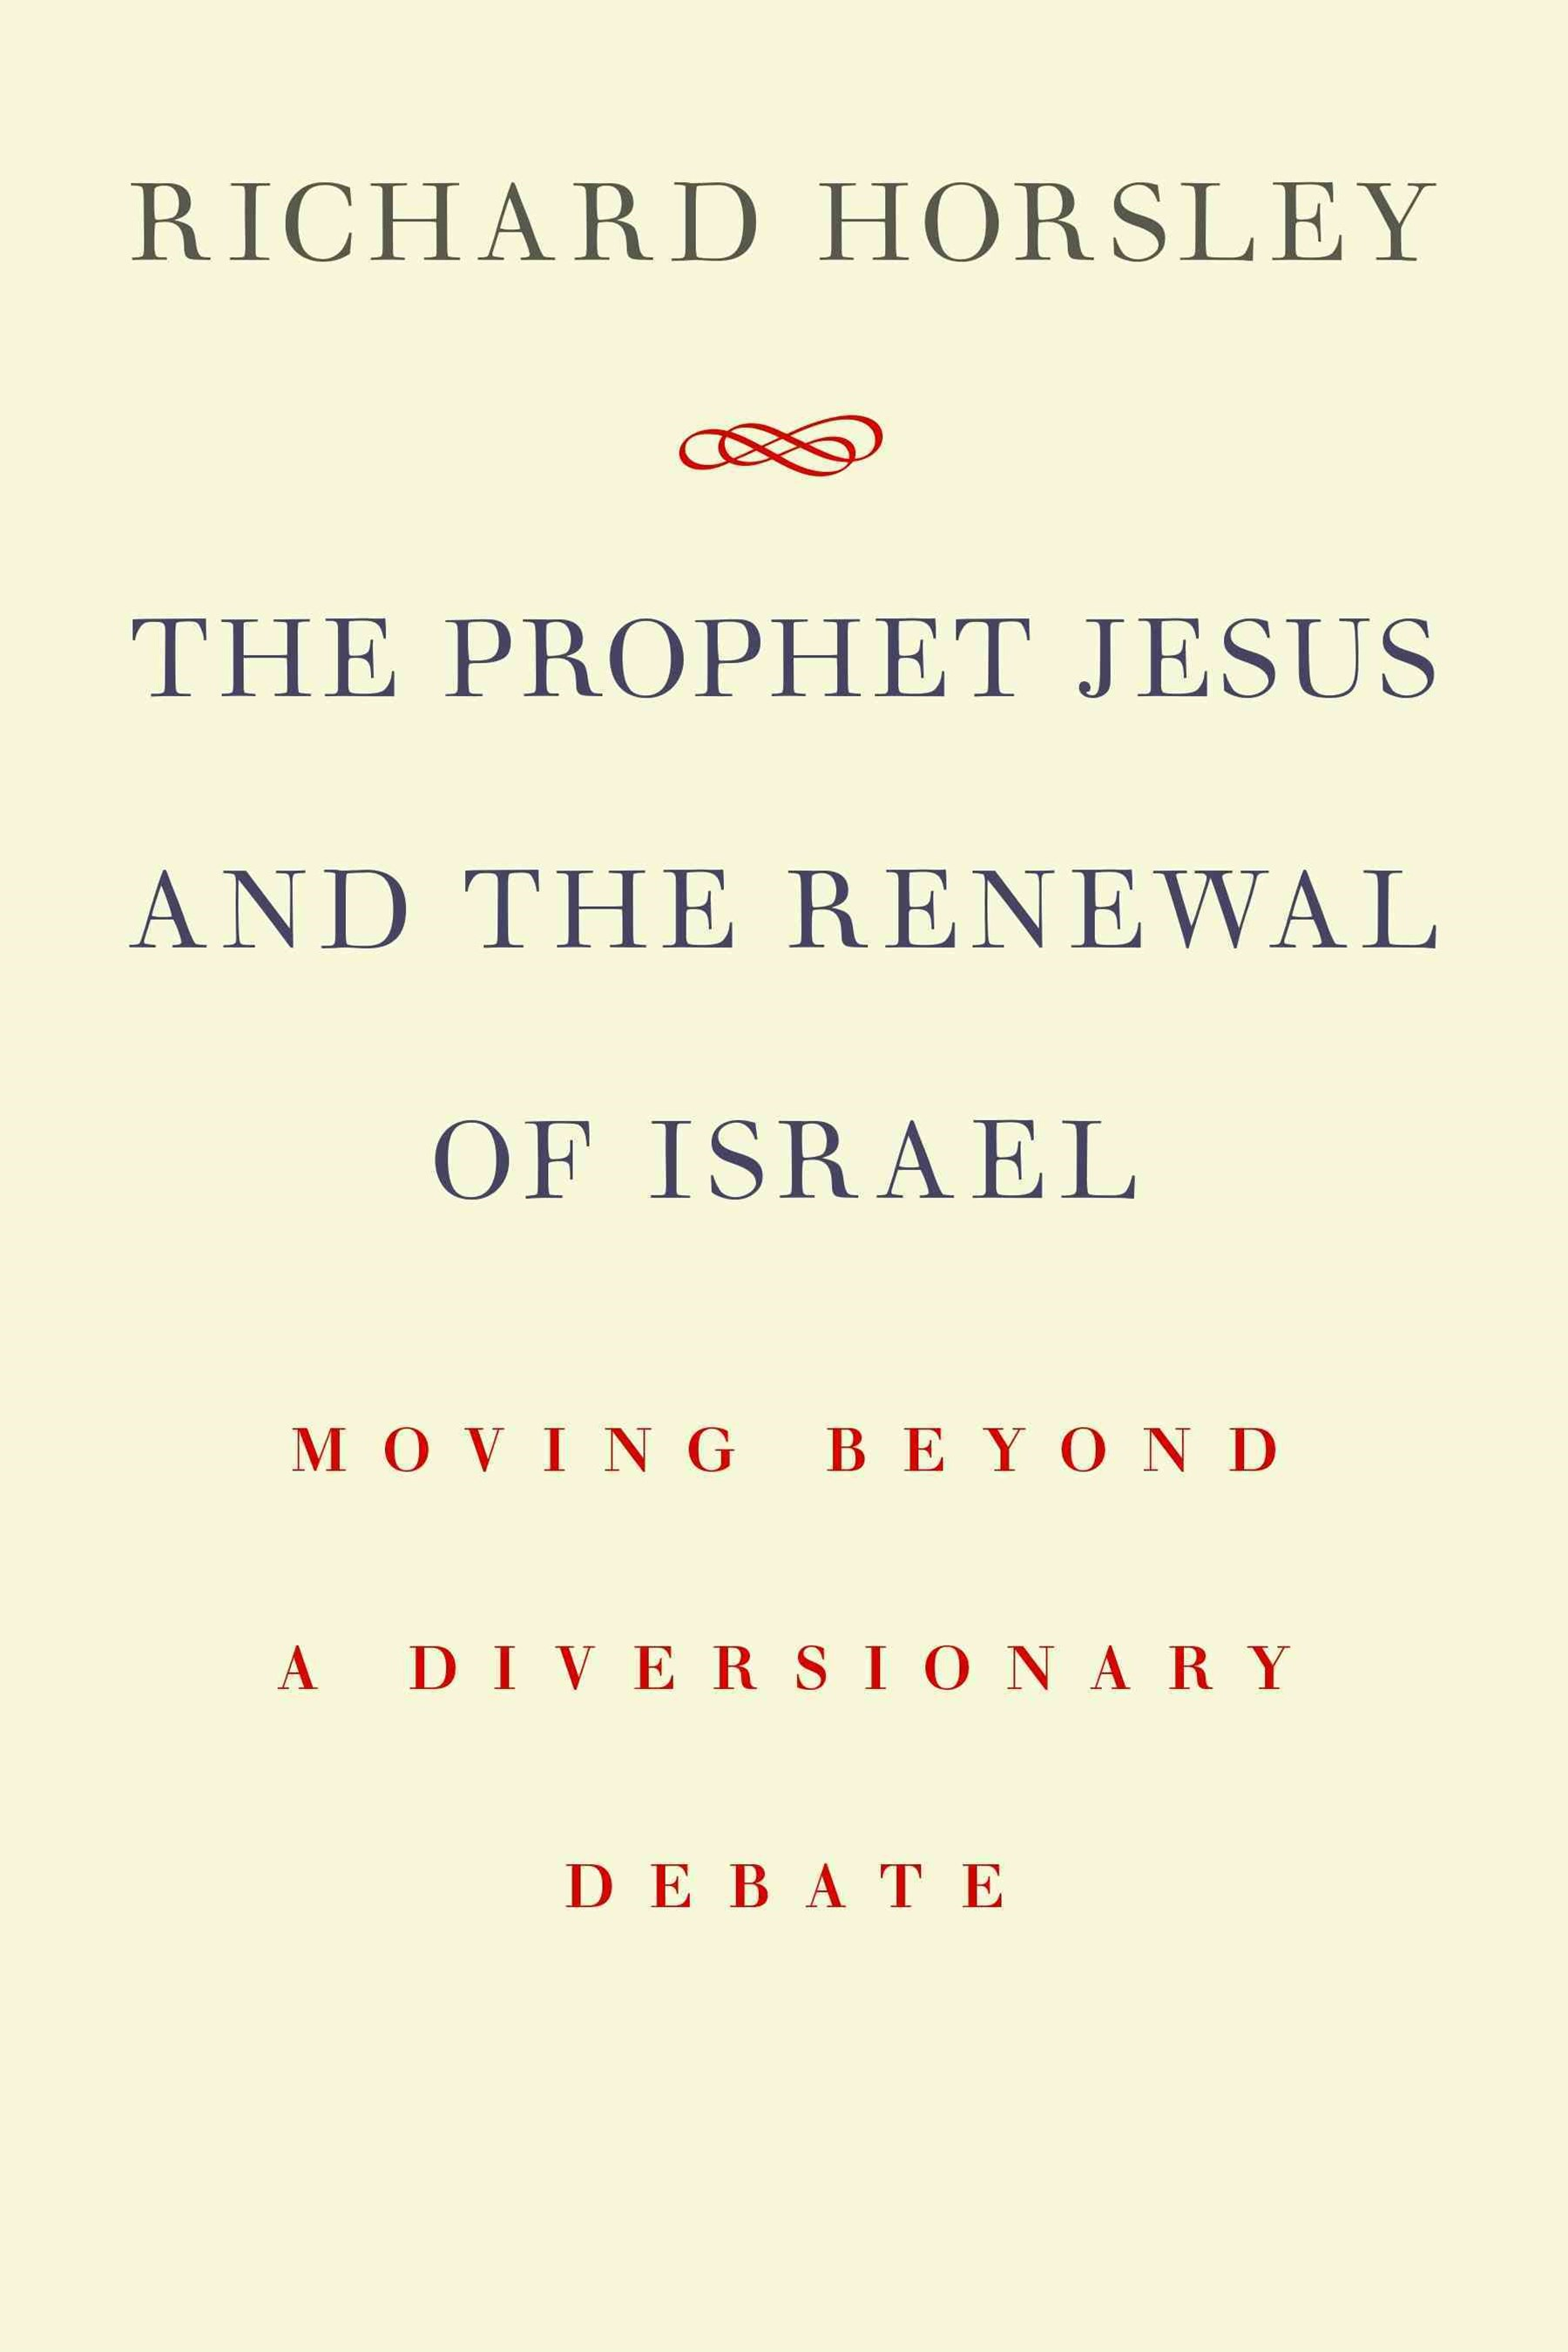 The Prophet Jesus and the Renewal of Israel